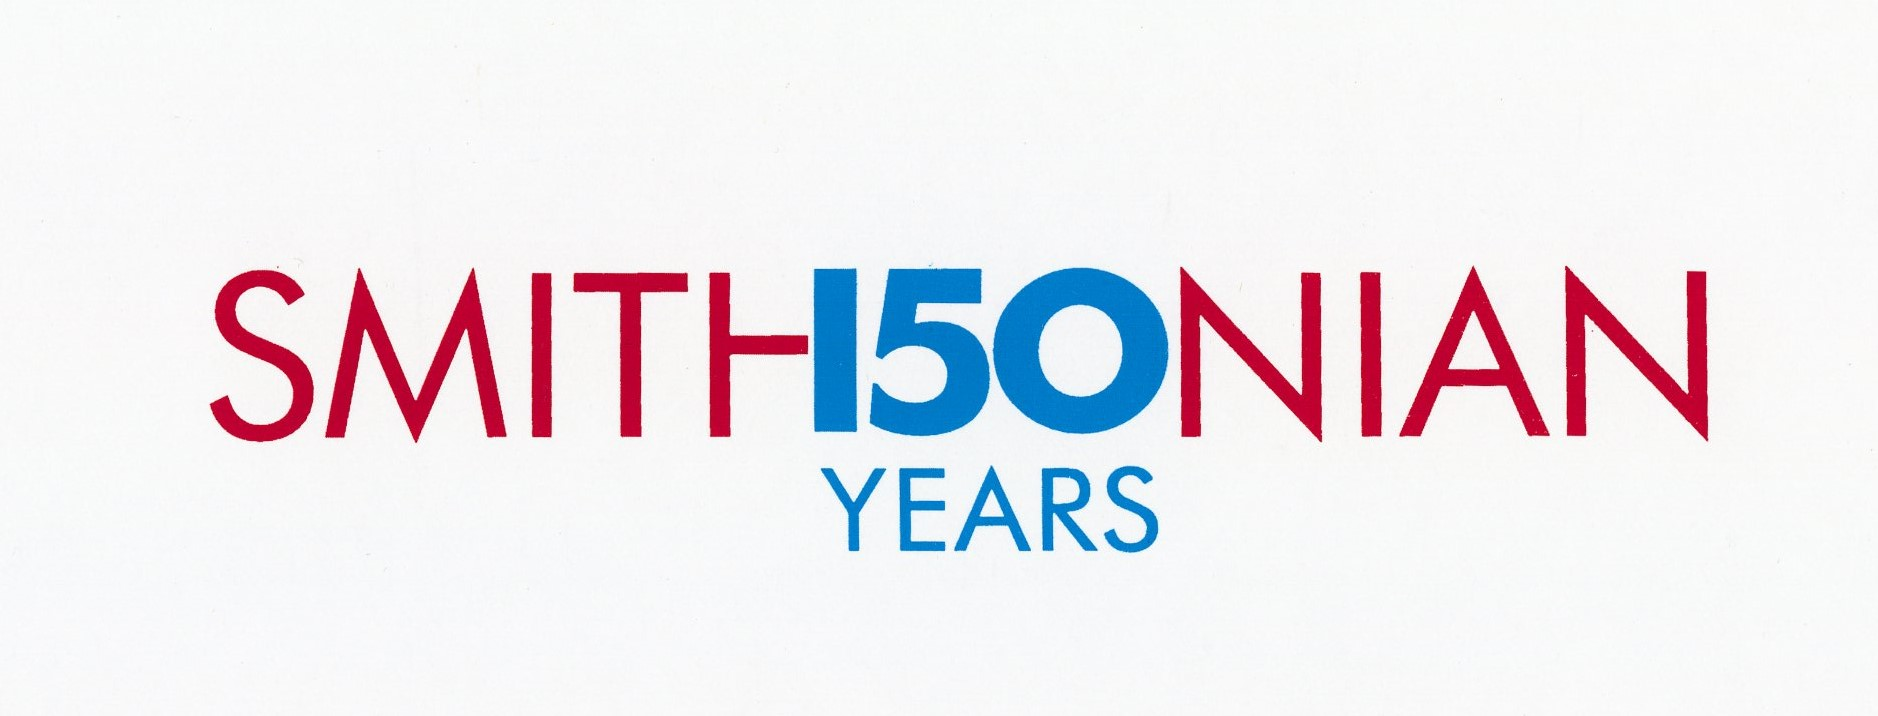 Rejected Smithsonian 150th Anniversary Logo, circa 1996. Image no. SIA2019-006023. Accession 99-099: